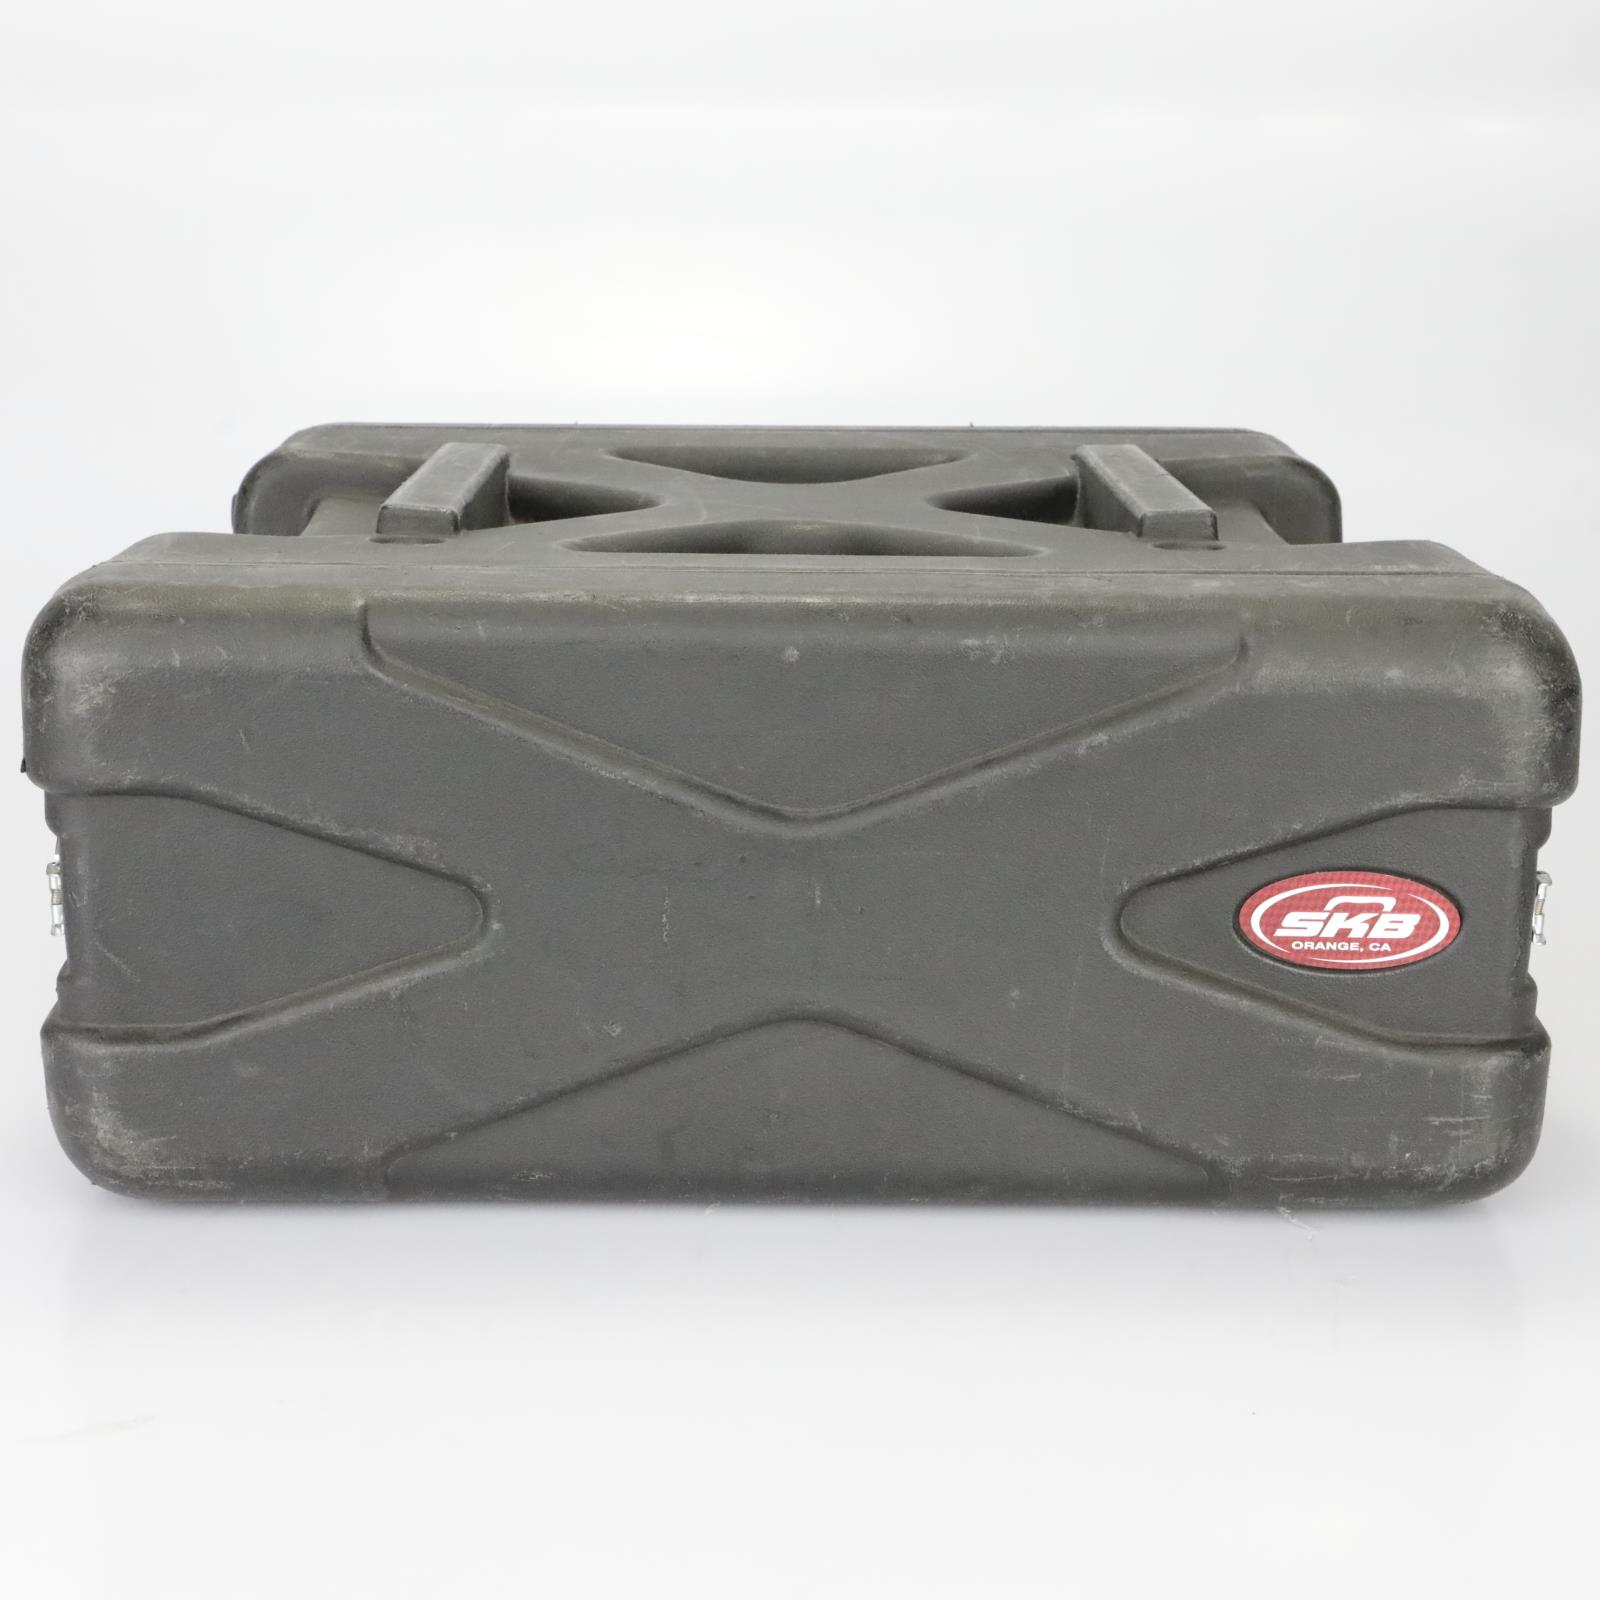 SKB 4U 4 Space Roto-Molded Road Rack Case Boys Like Girls #39459